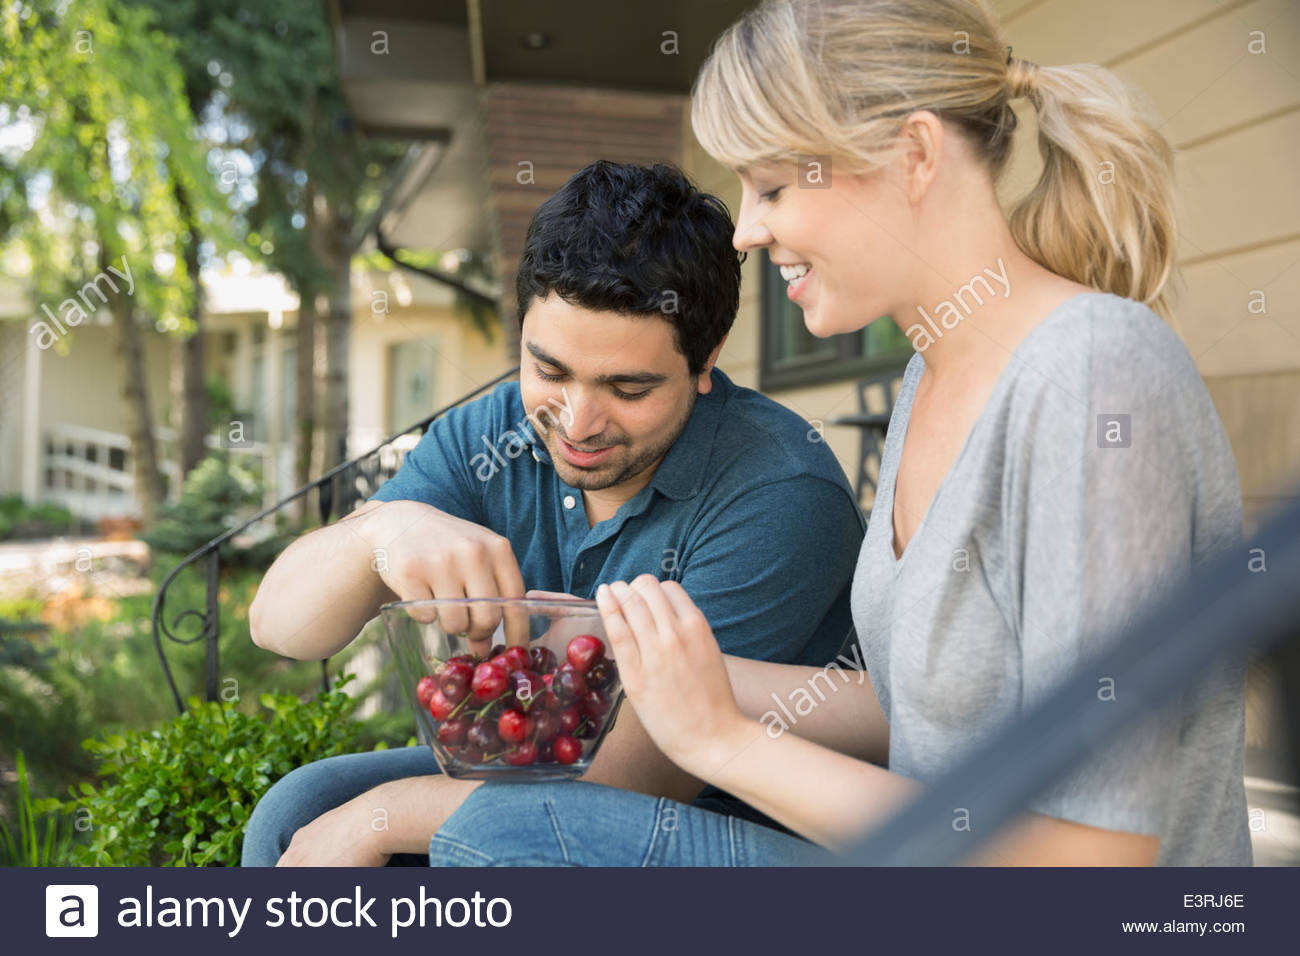 Couple eating cherries on front stoop - Stock Image